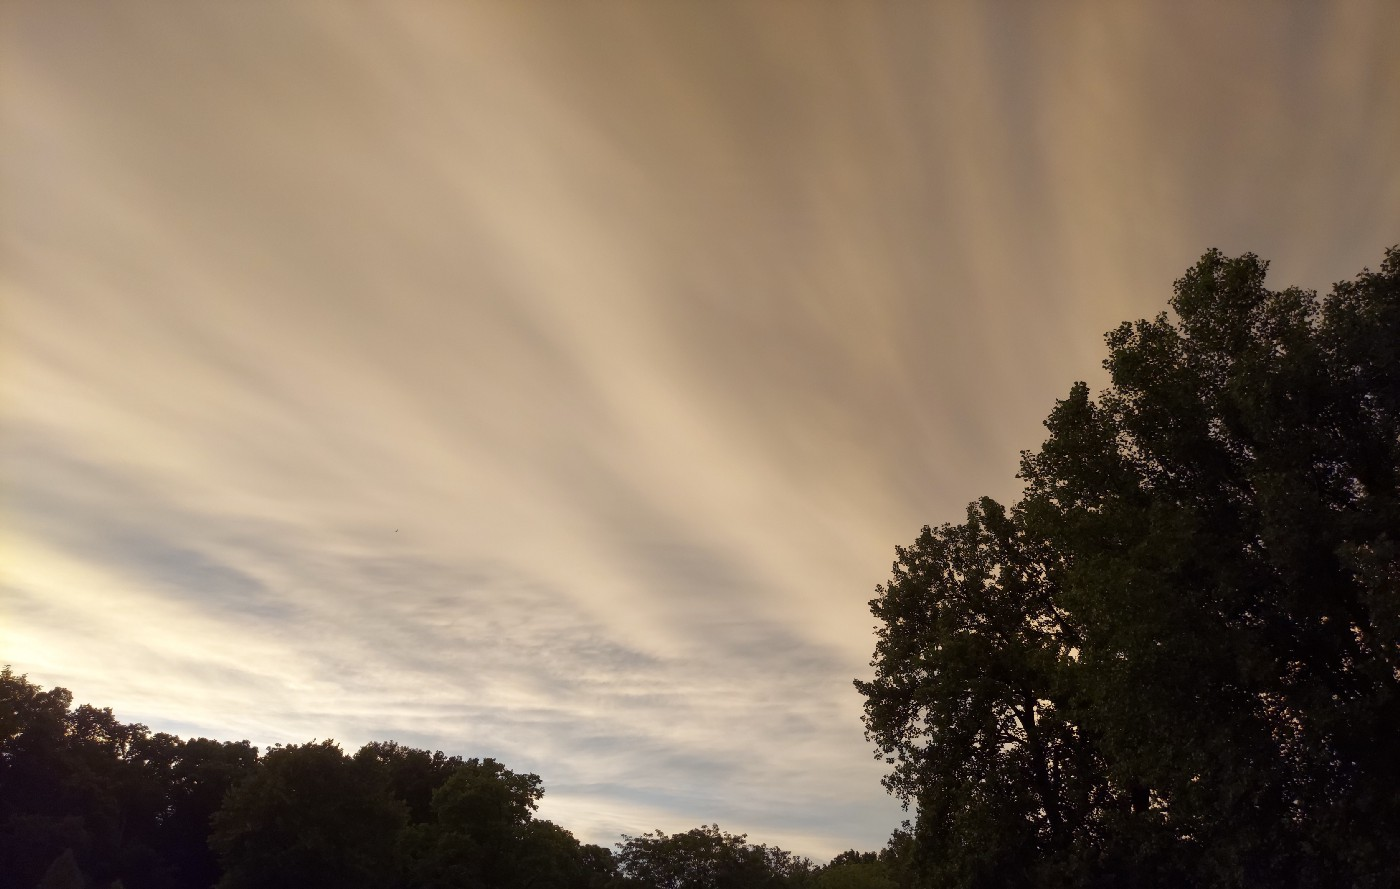 Cloudy sky behind trees. The clouds appear to be streaming from a point to the left of the image